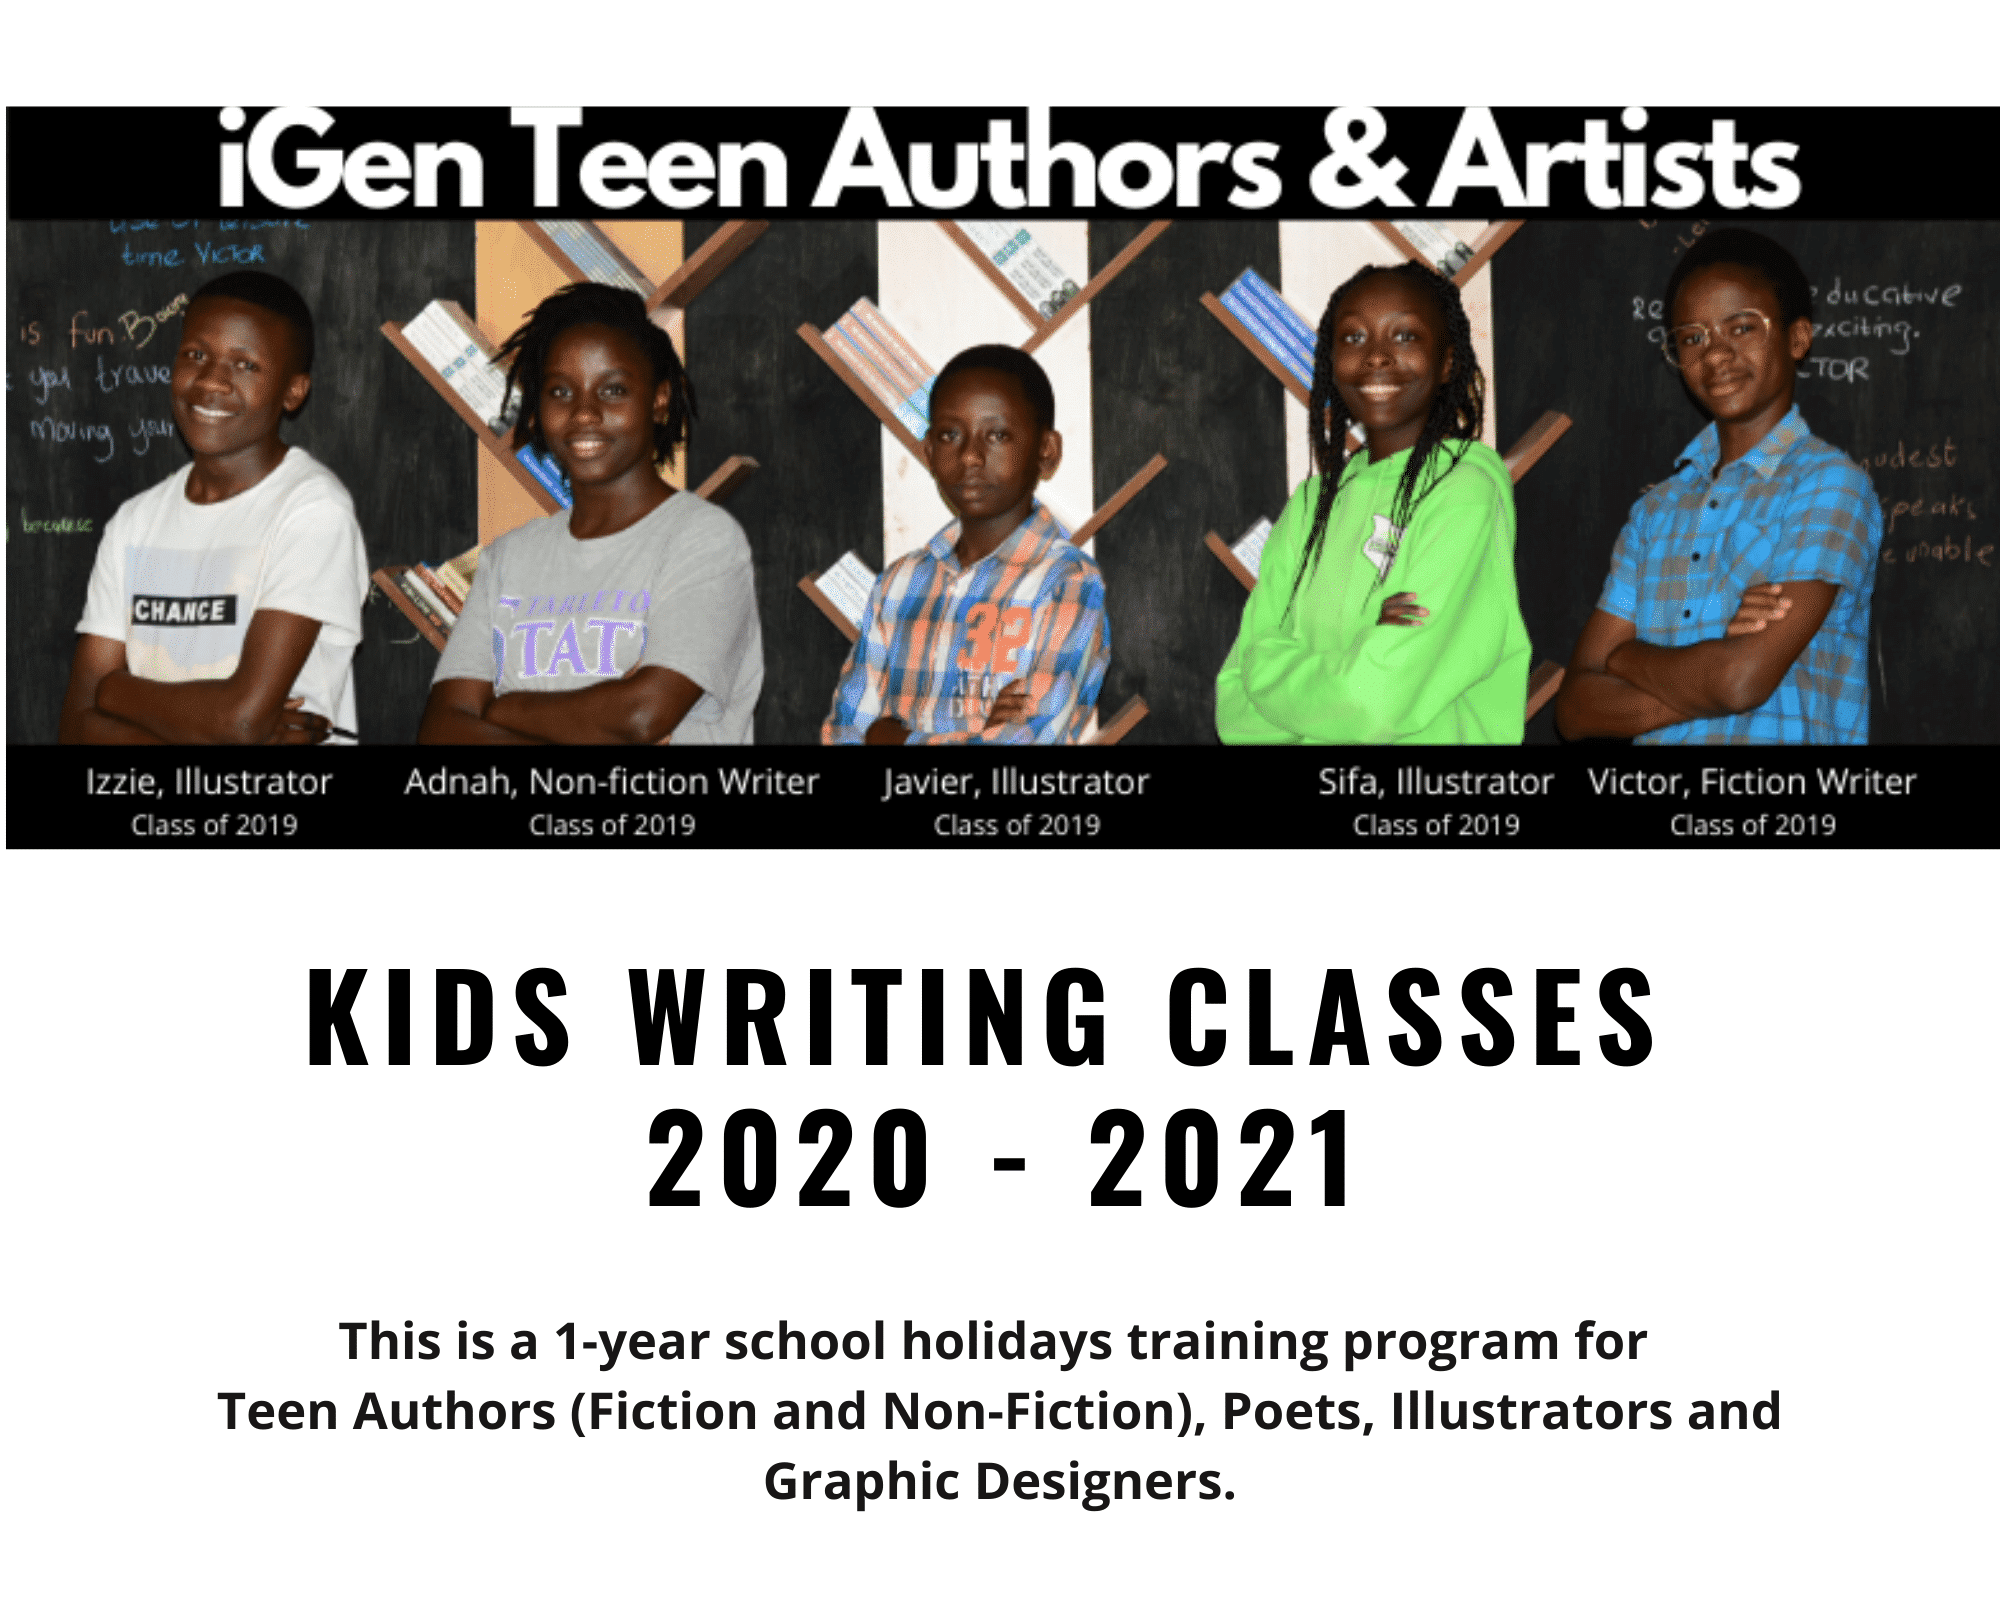 iGen Teen Authors & Artists